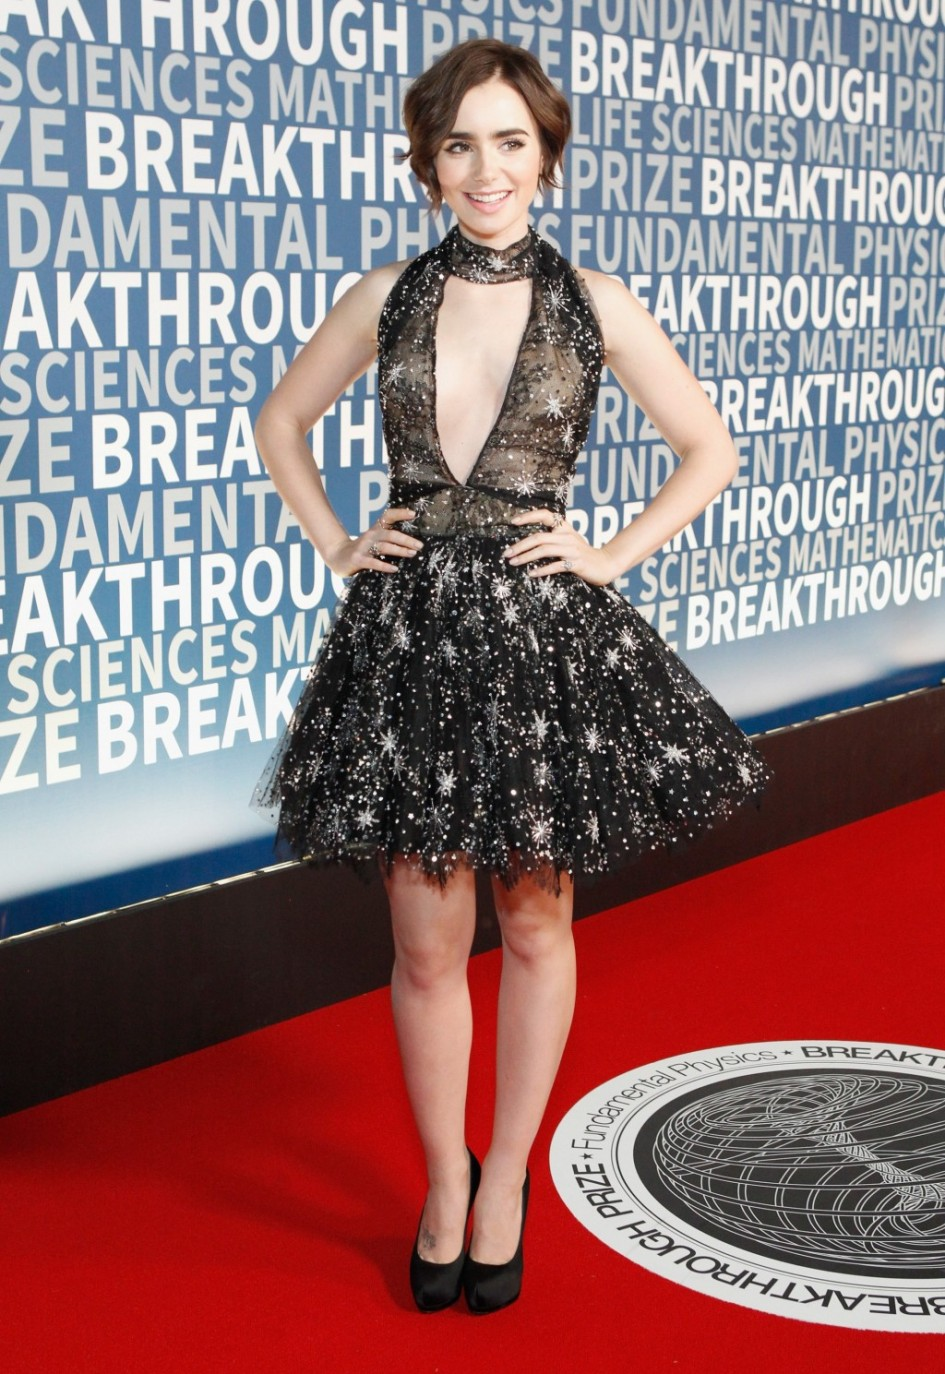 02_Best_Dressed_Celebrities_Lily_Collins_2016_Breakthrough_Prize_Ceremony-1024x1489